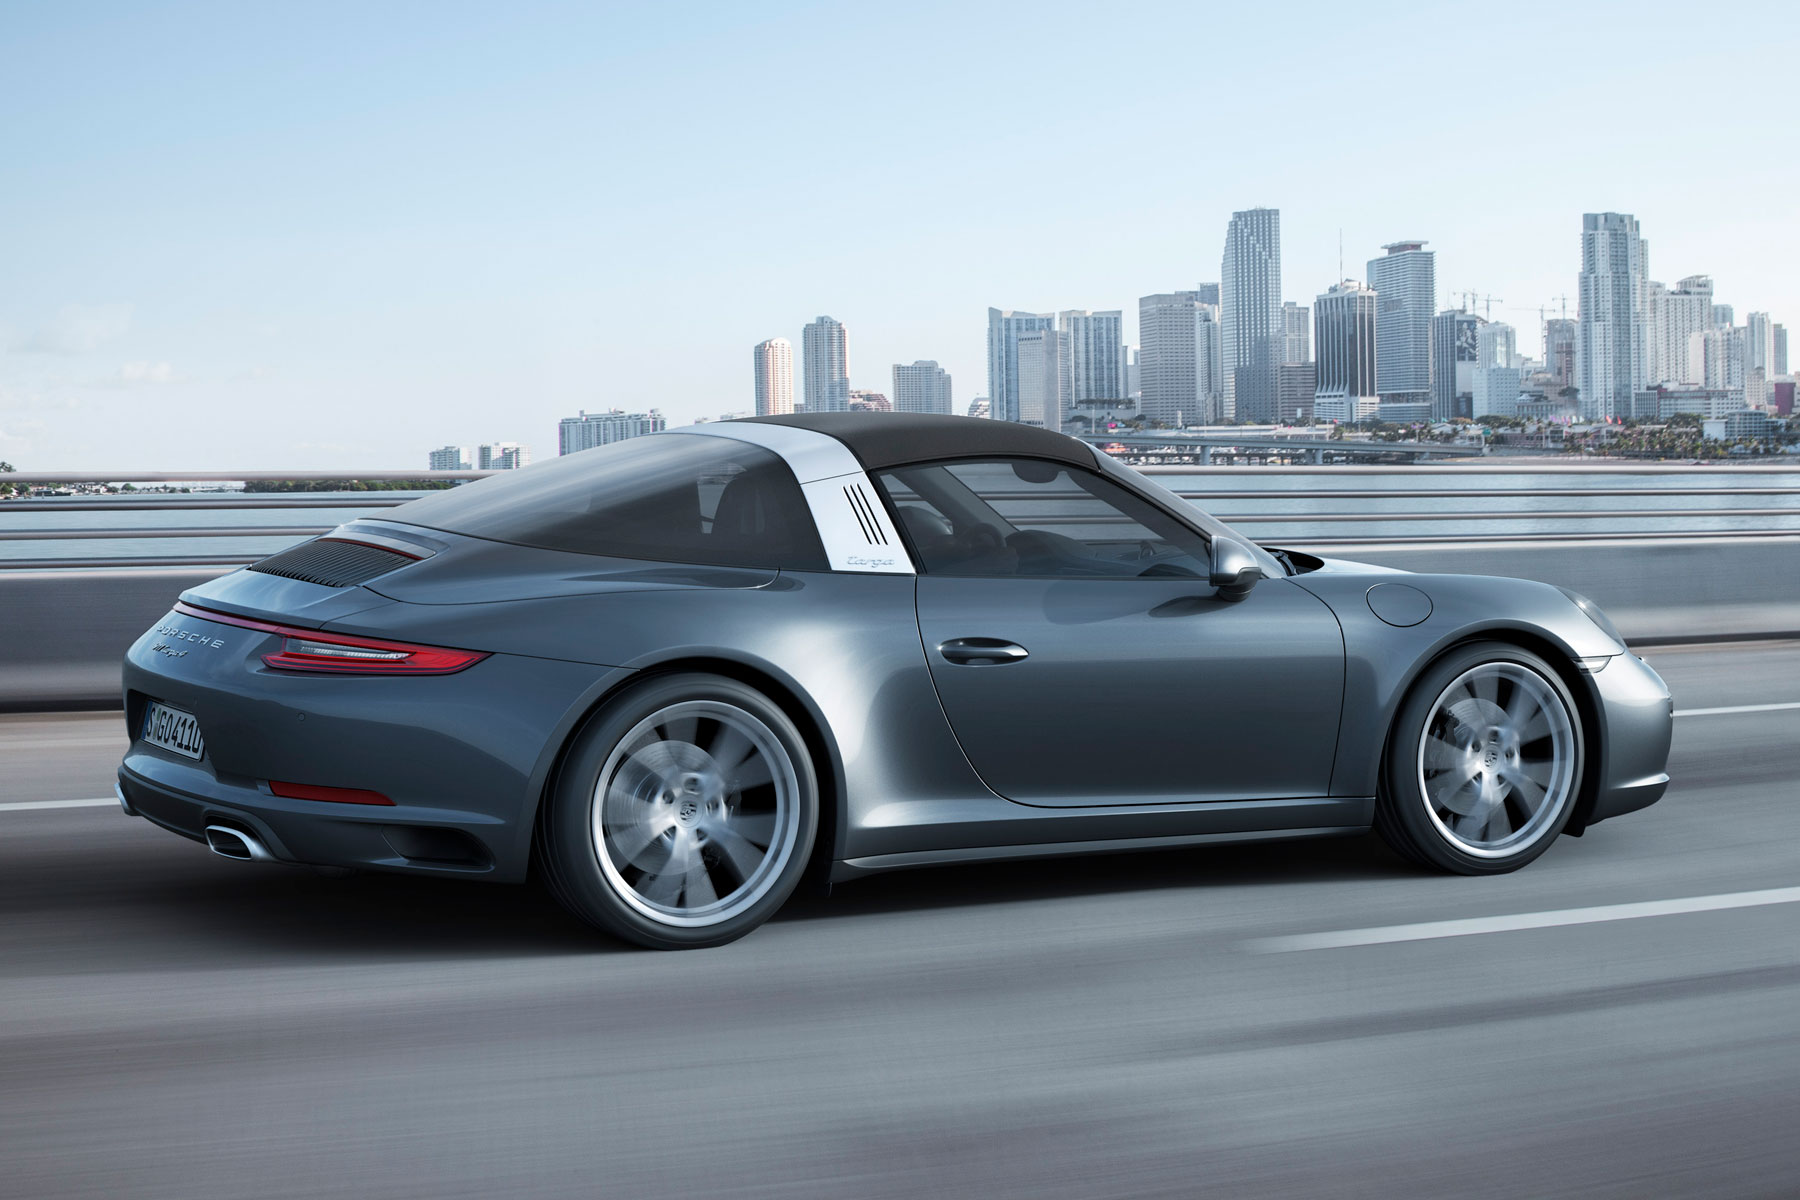 A Targa Top Is Semi Convertible Body Style With Removable Roof Section And Full Width Roll Bar Behind The Seats Name Was First Used By Porsche